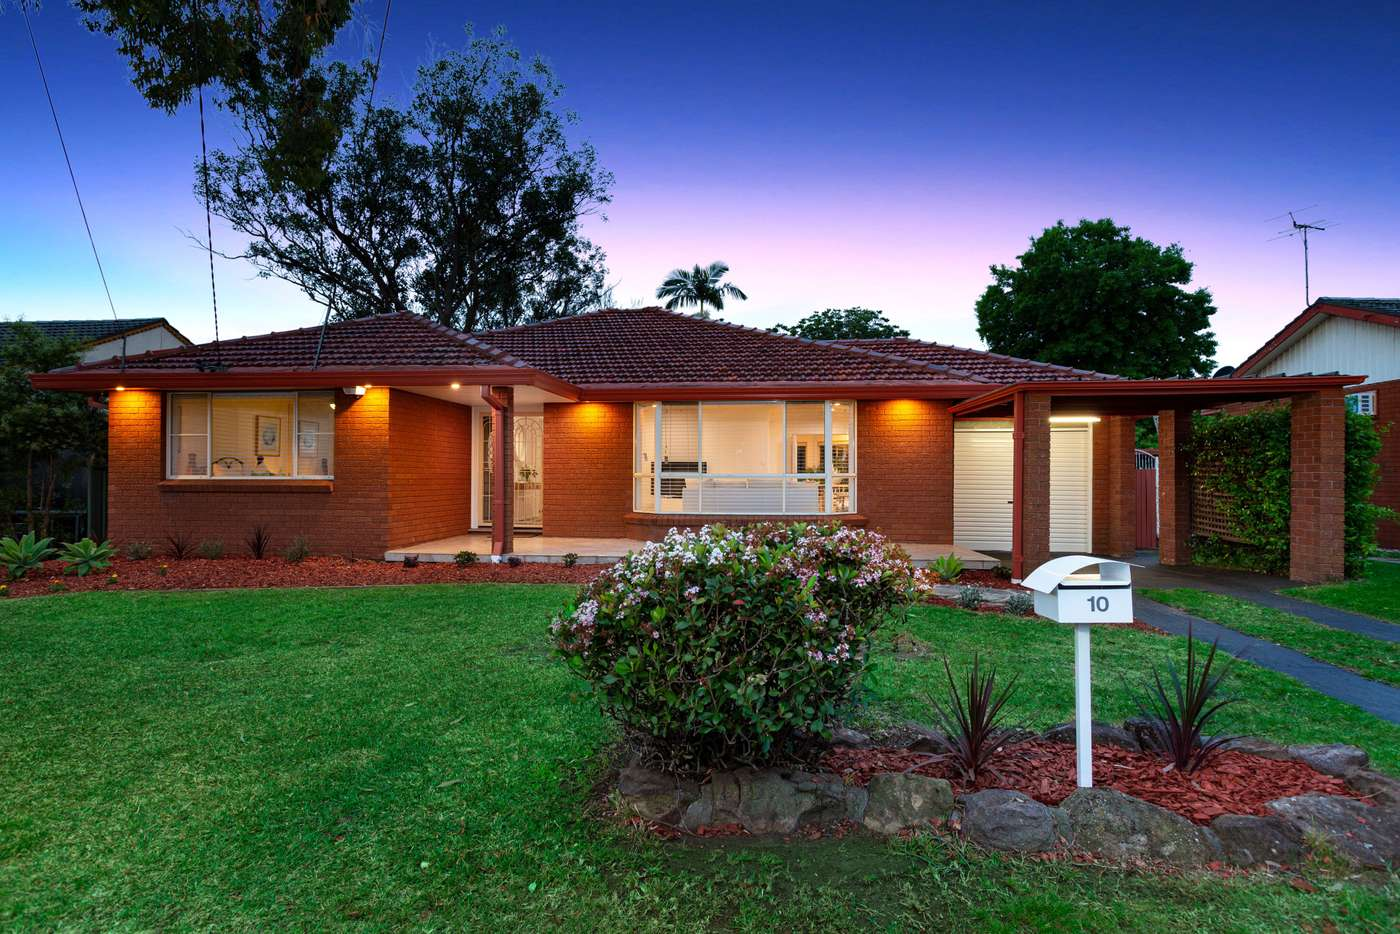 Main view of Homely house listing, 10 Reppan Avenue, Baulkham Hills NSW 2153